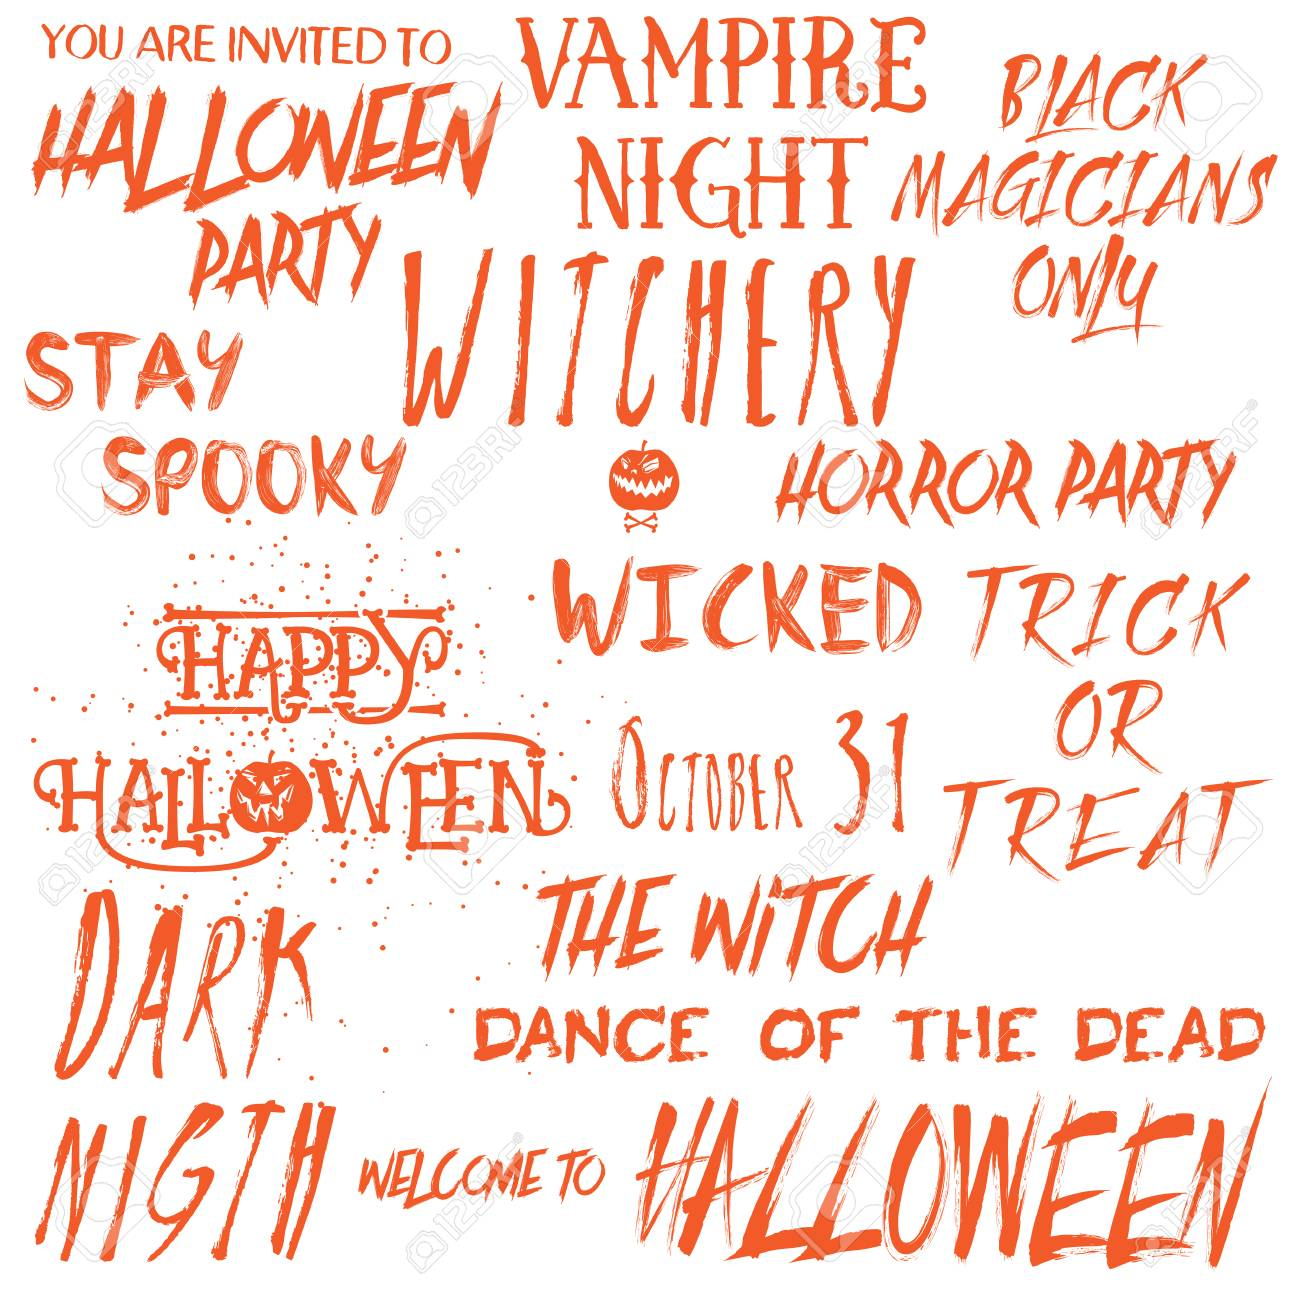 Set of Halloween quotes for posters about Halloween party and